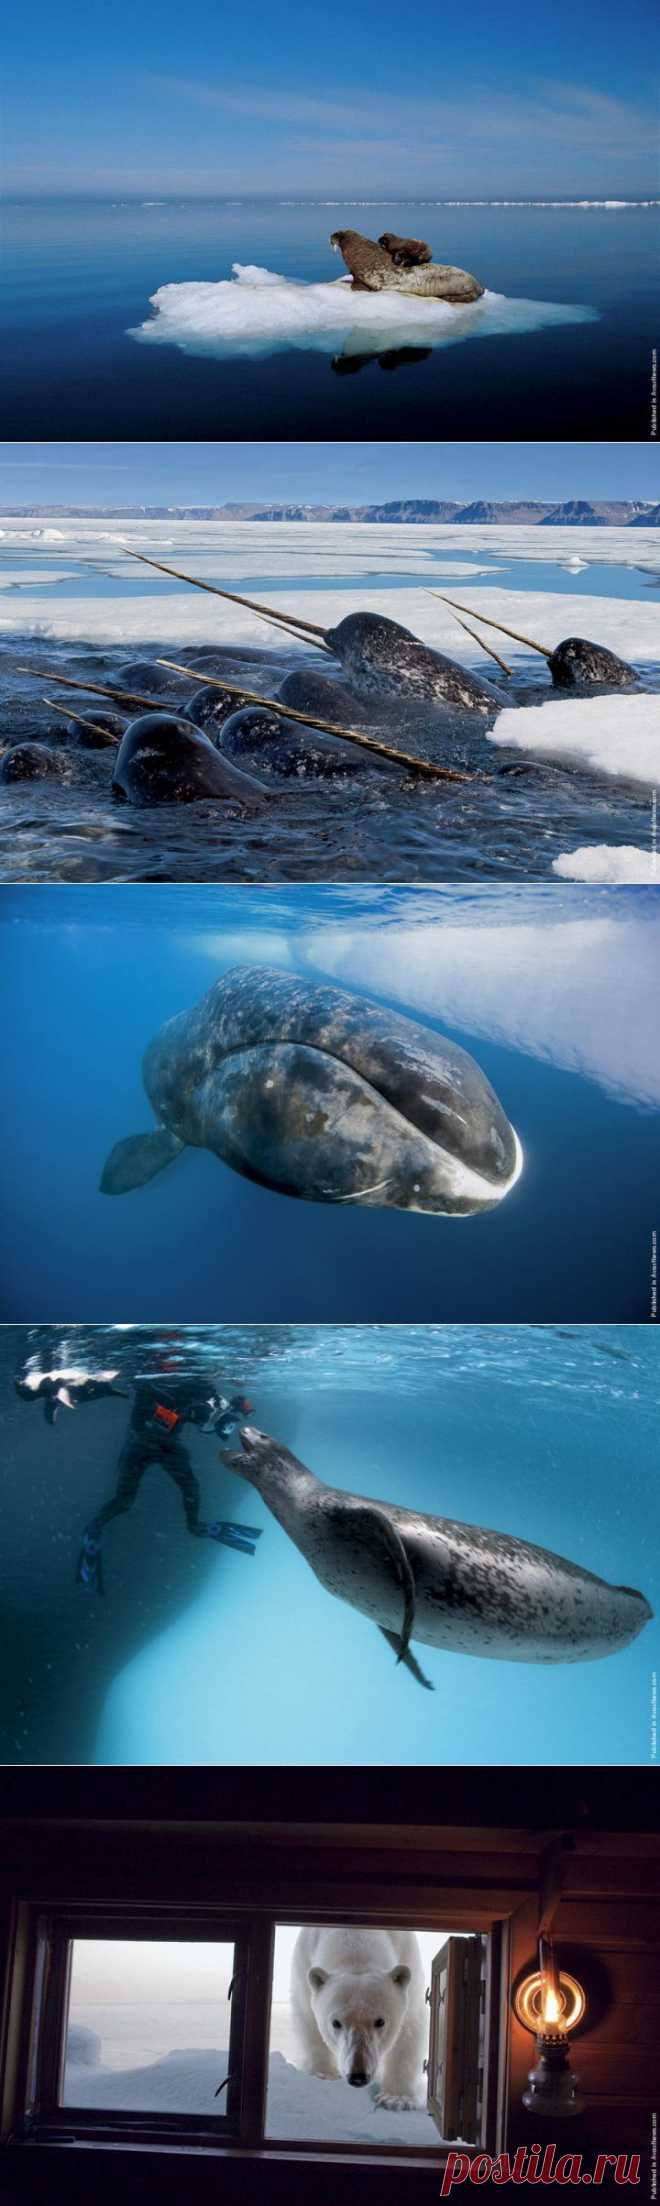 Inhabitants of the Arctic on Paul Niklen's photo | SCIENCE AND LIFE